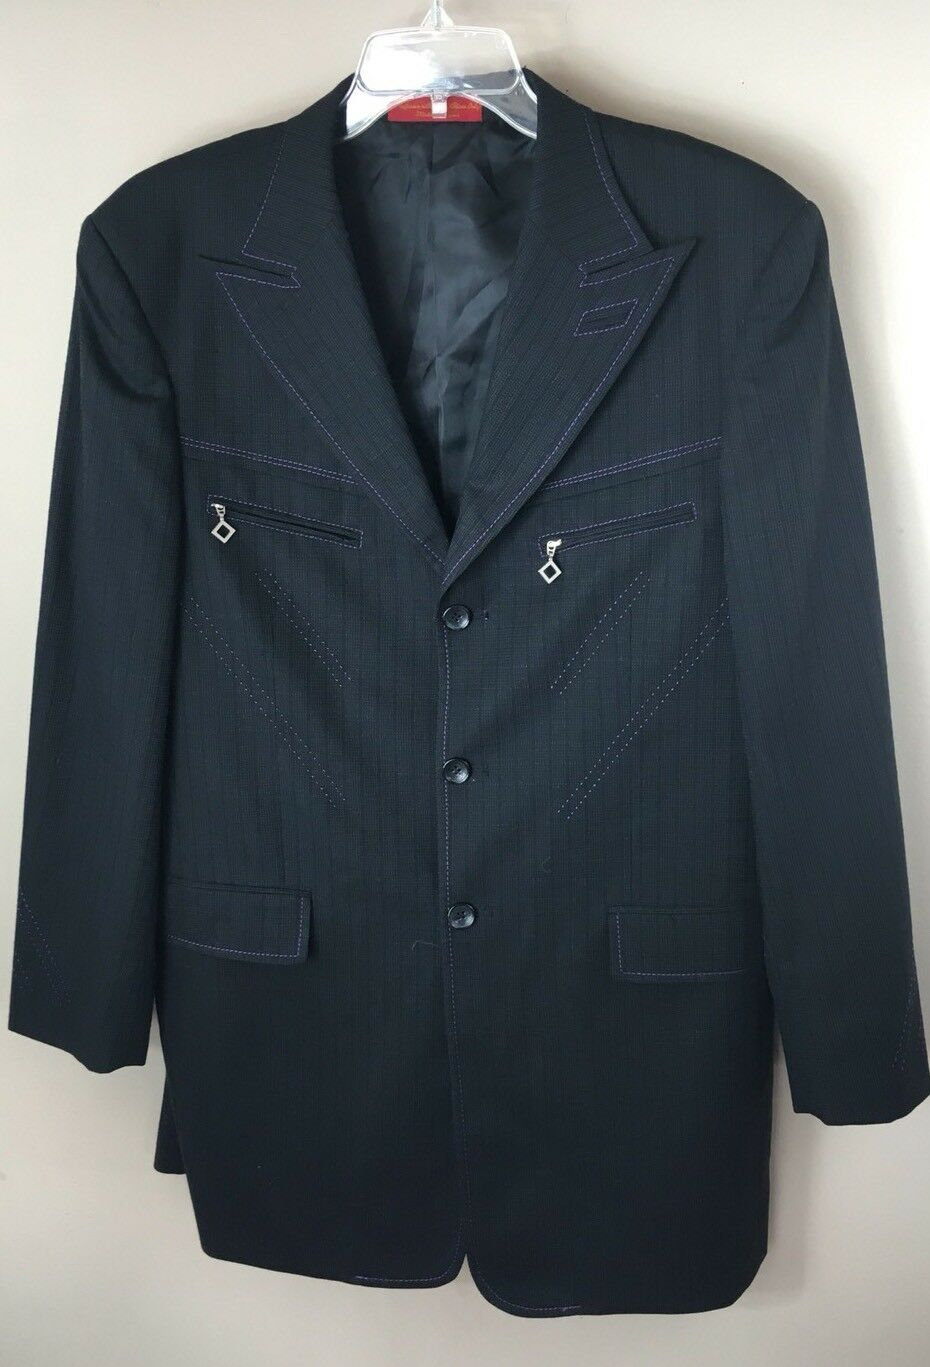 42 R LORIANO COLLECTION 3 PIECE Men's Suit  80%WOOL, 20% CASHMERE Super 150's